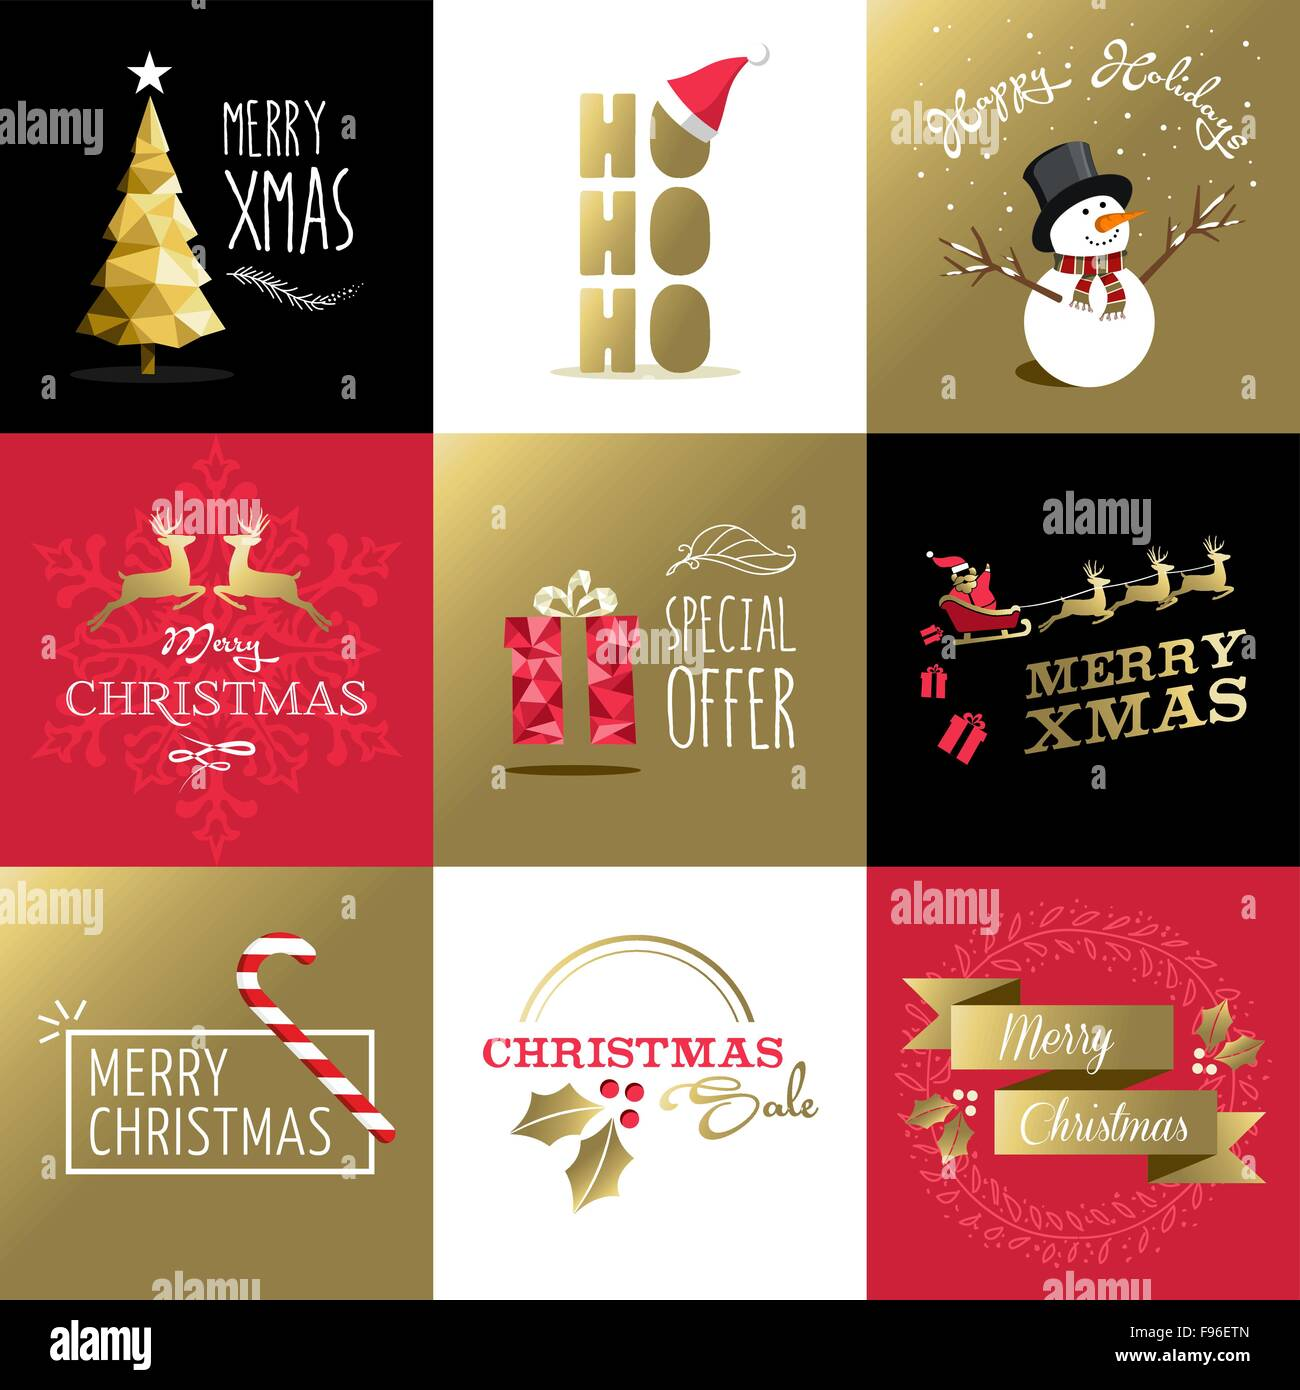 Merry christmas retro style design set in gold colors, includes ...